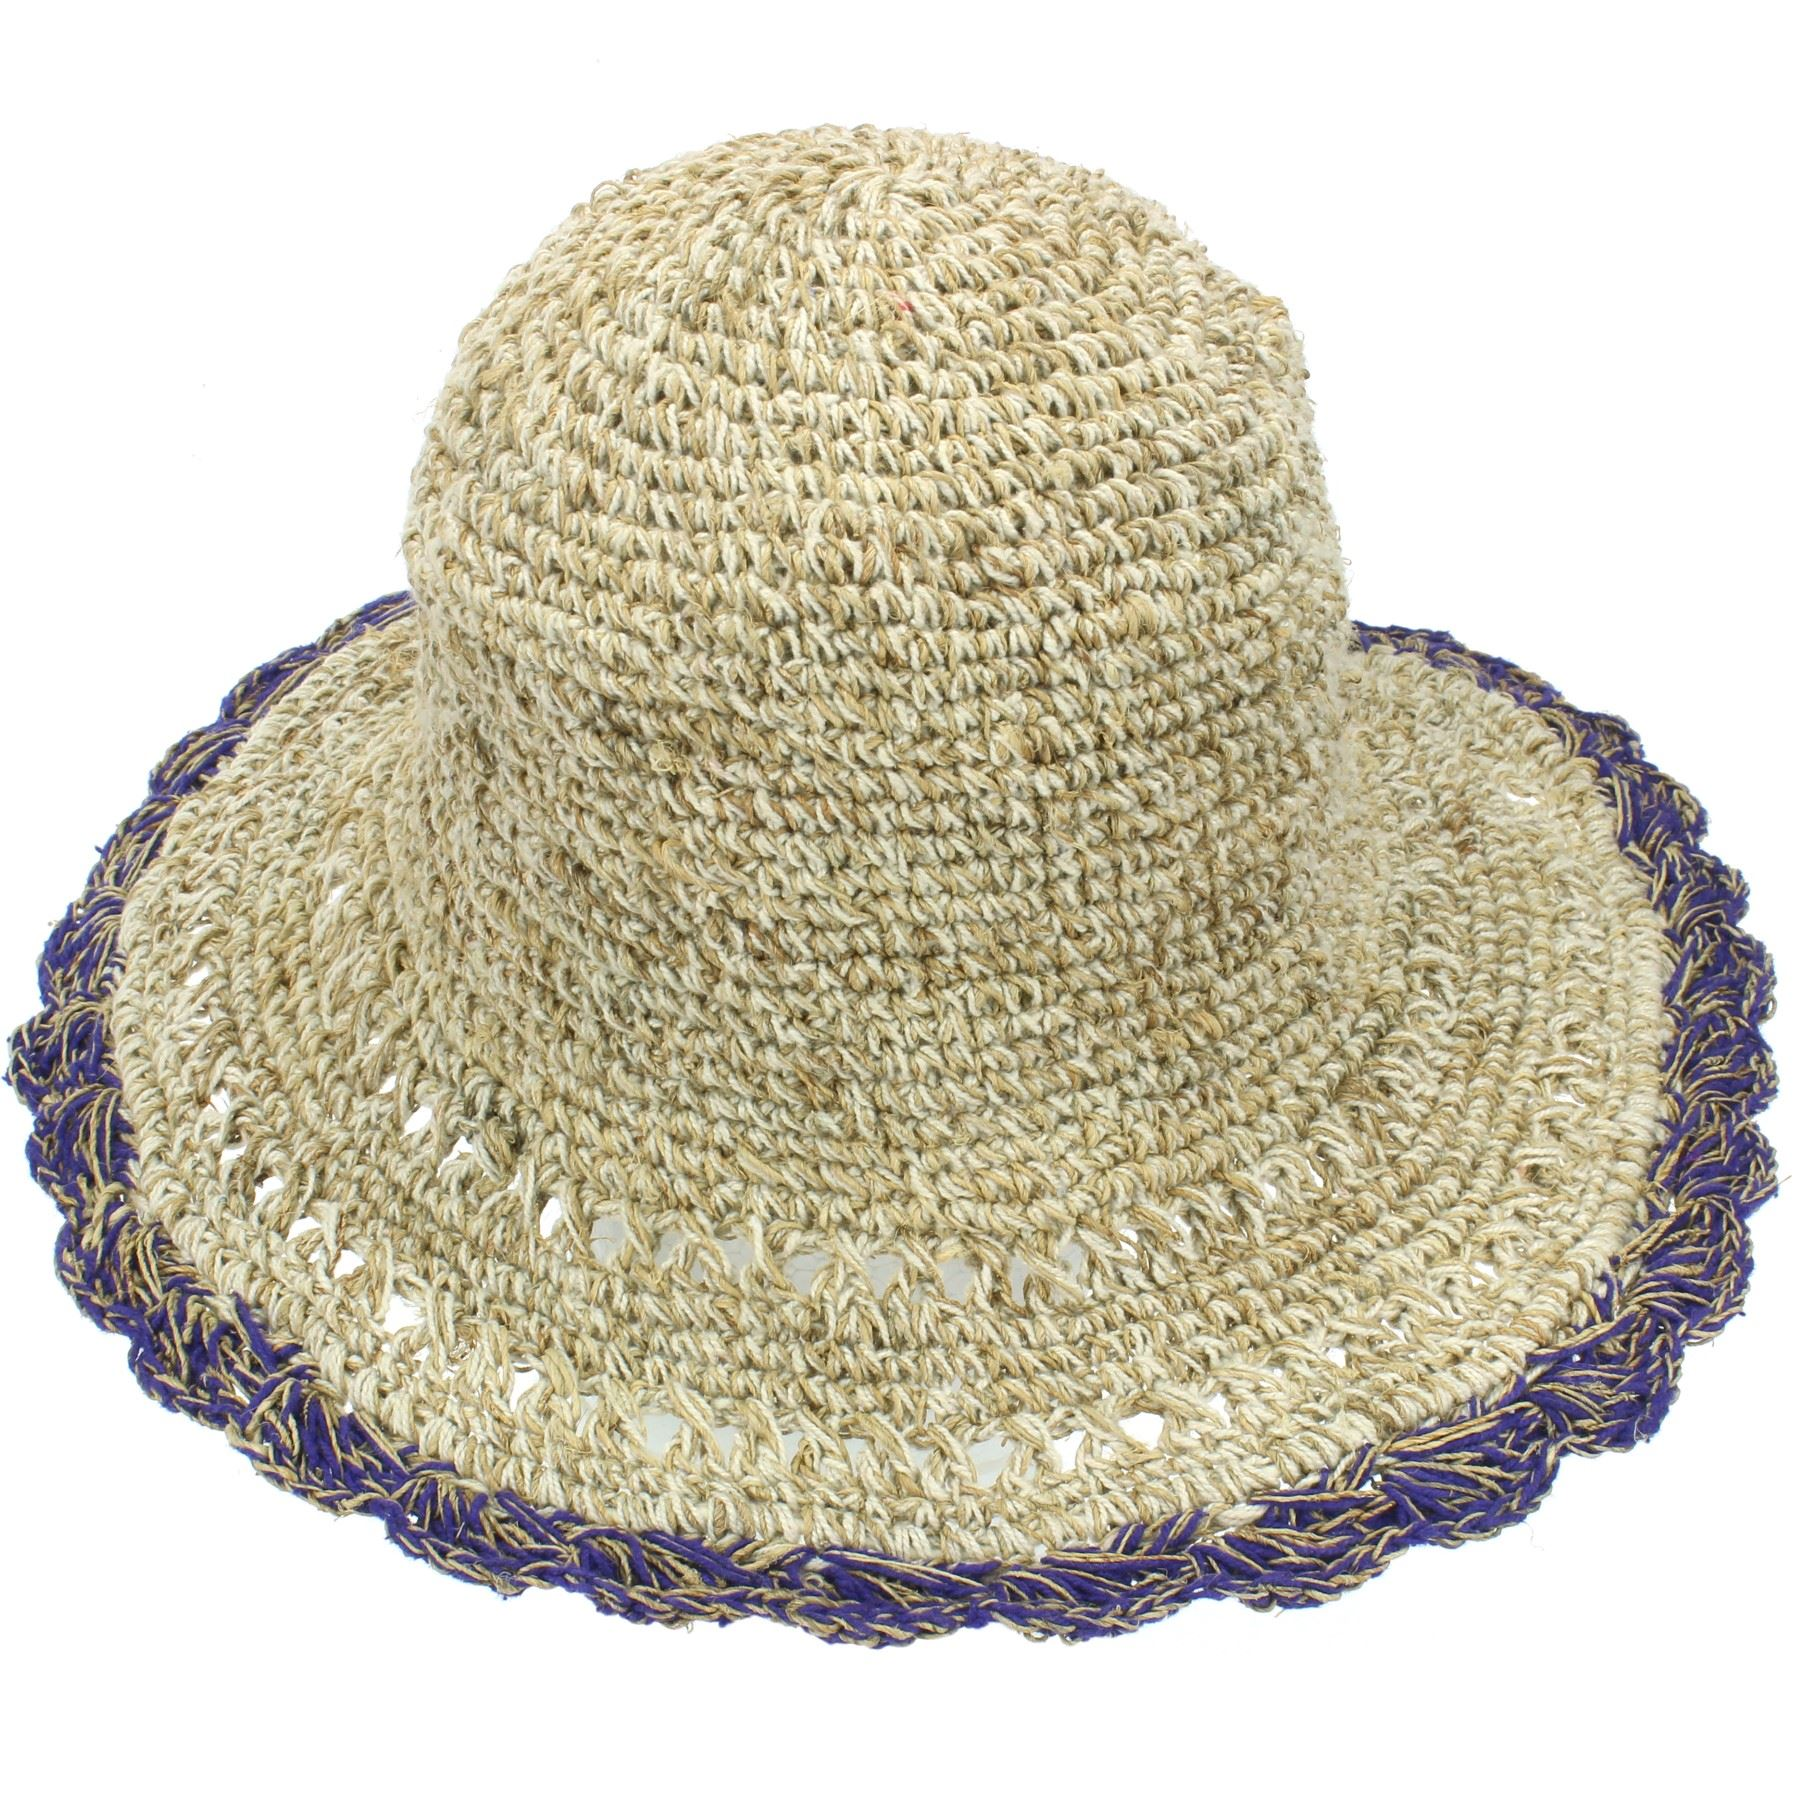 969b7b598cbb39 Sun Hat Hemp Cotton Summer LoudElephant Brim Beach Cap Boho Hippy | eBay